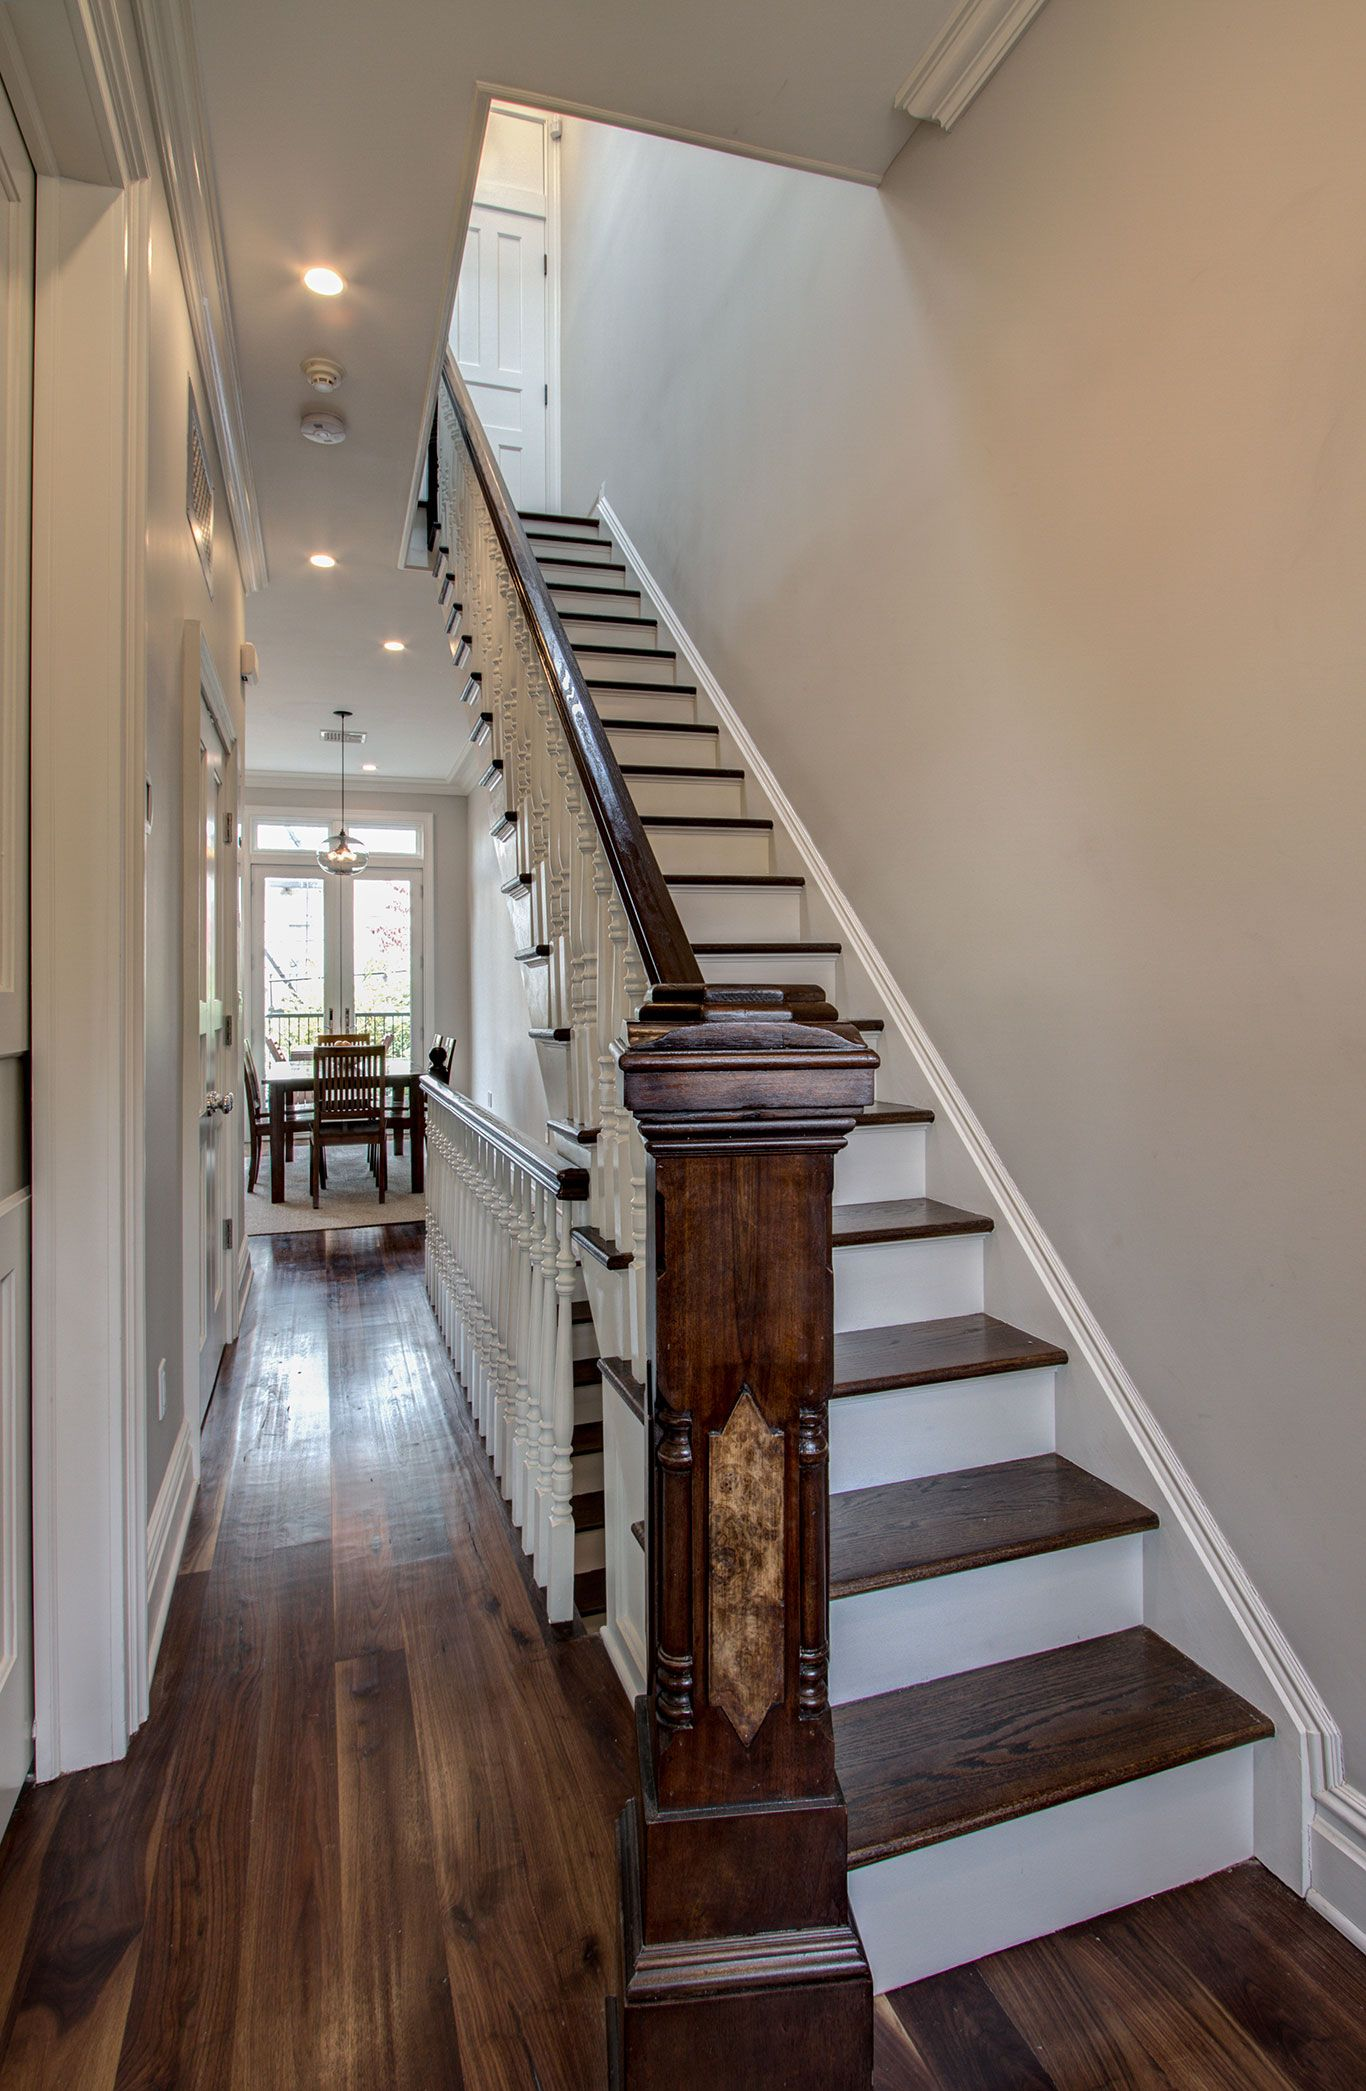 Admirable Stair Hallway In A Brownstone Renovation Park Slope Brooklyn Inspirational Interior Design Netriciaus